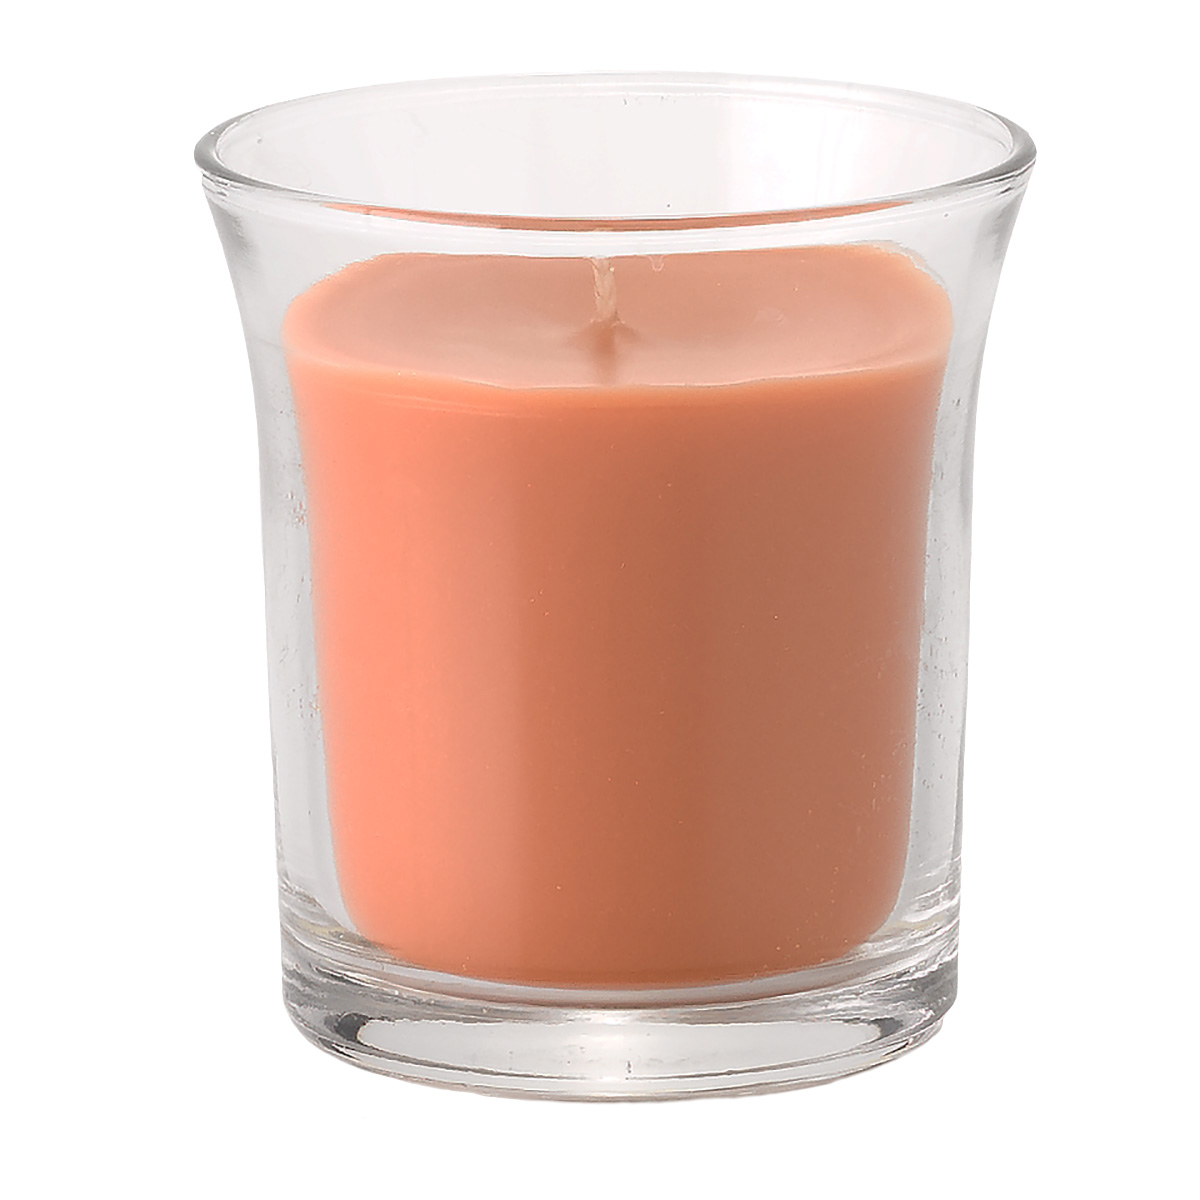 Belize Candle - Peach Orchard (Peach)